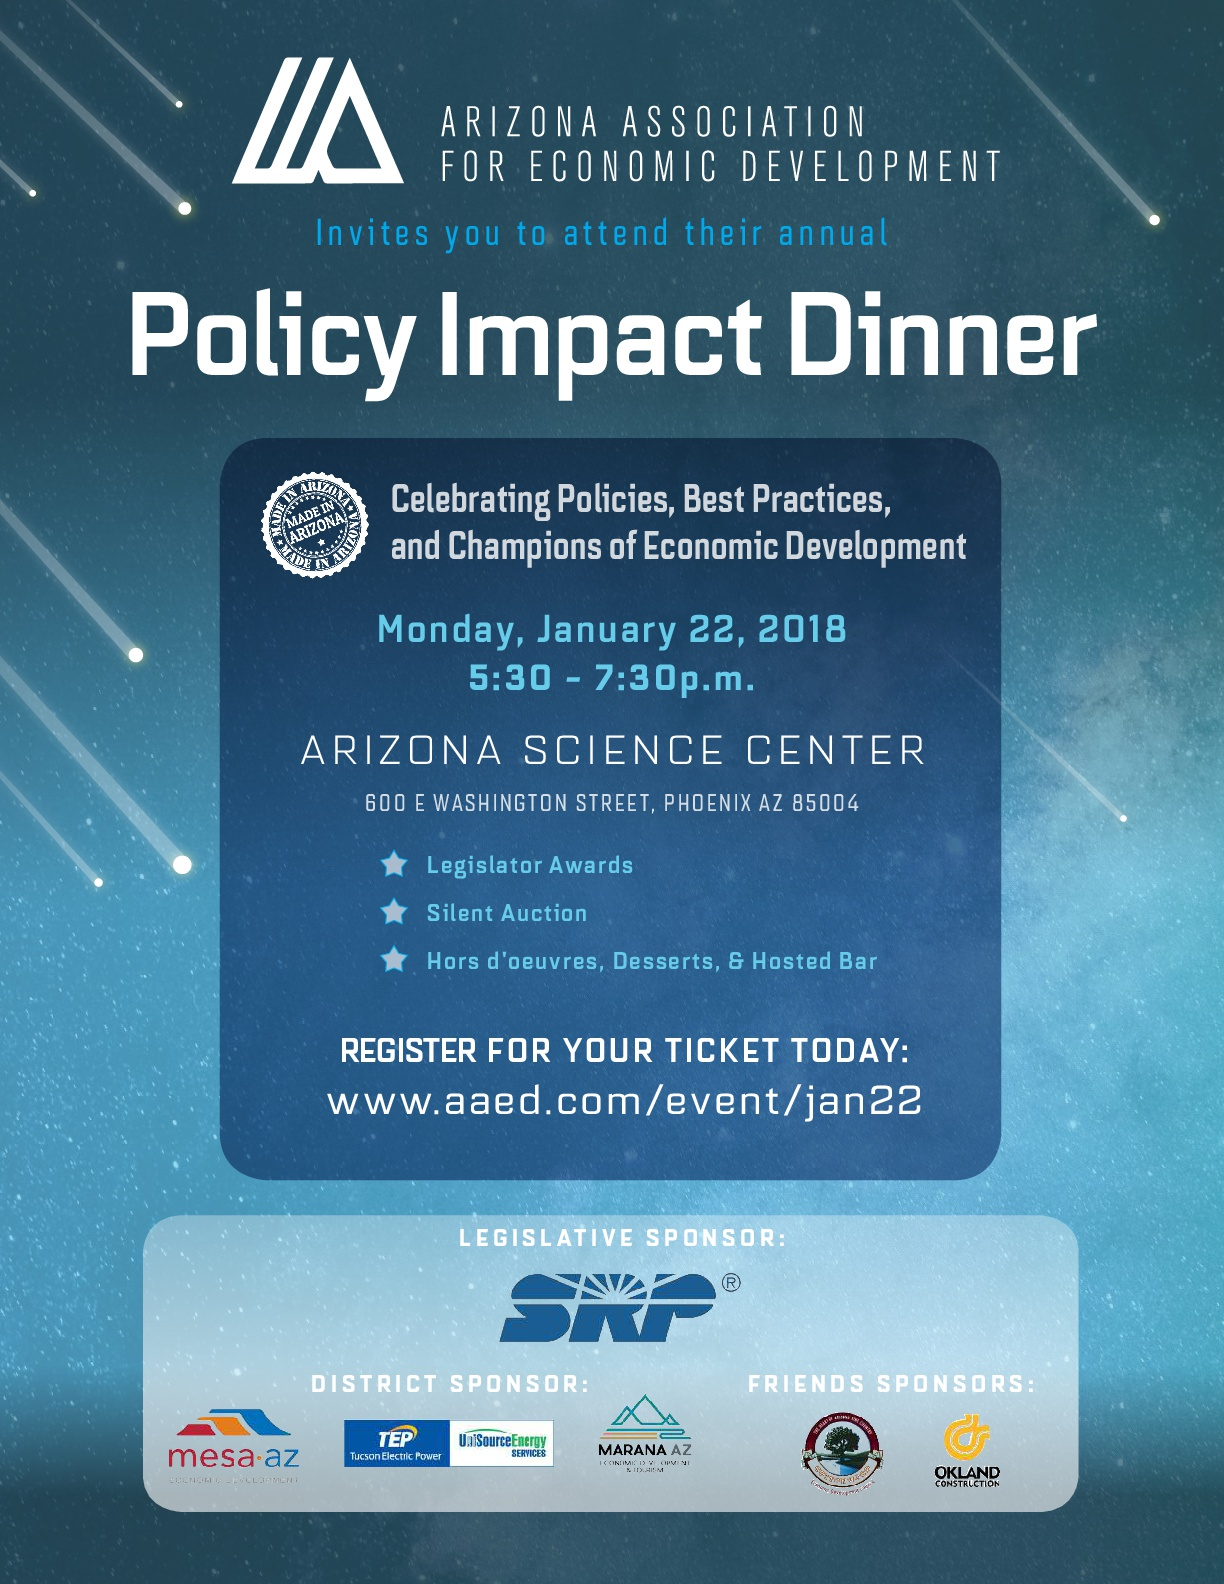 AAED - Policy Impact Dinner @ Arizona Science Center | Phoenix | Arizona | United States